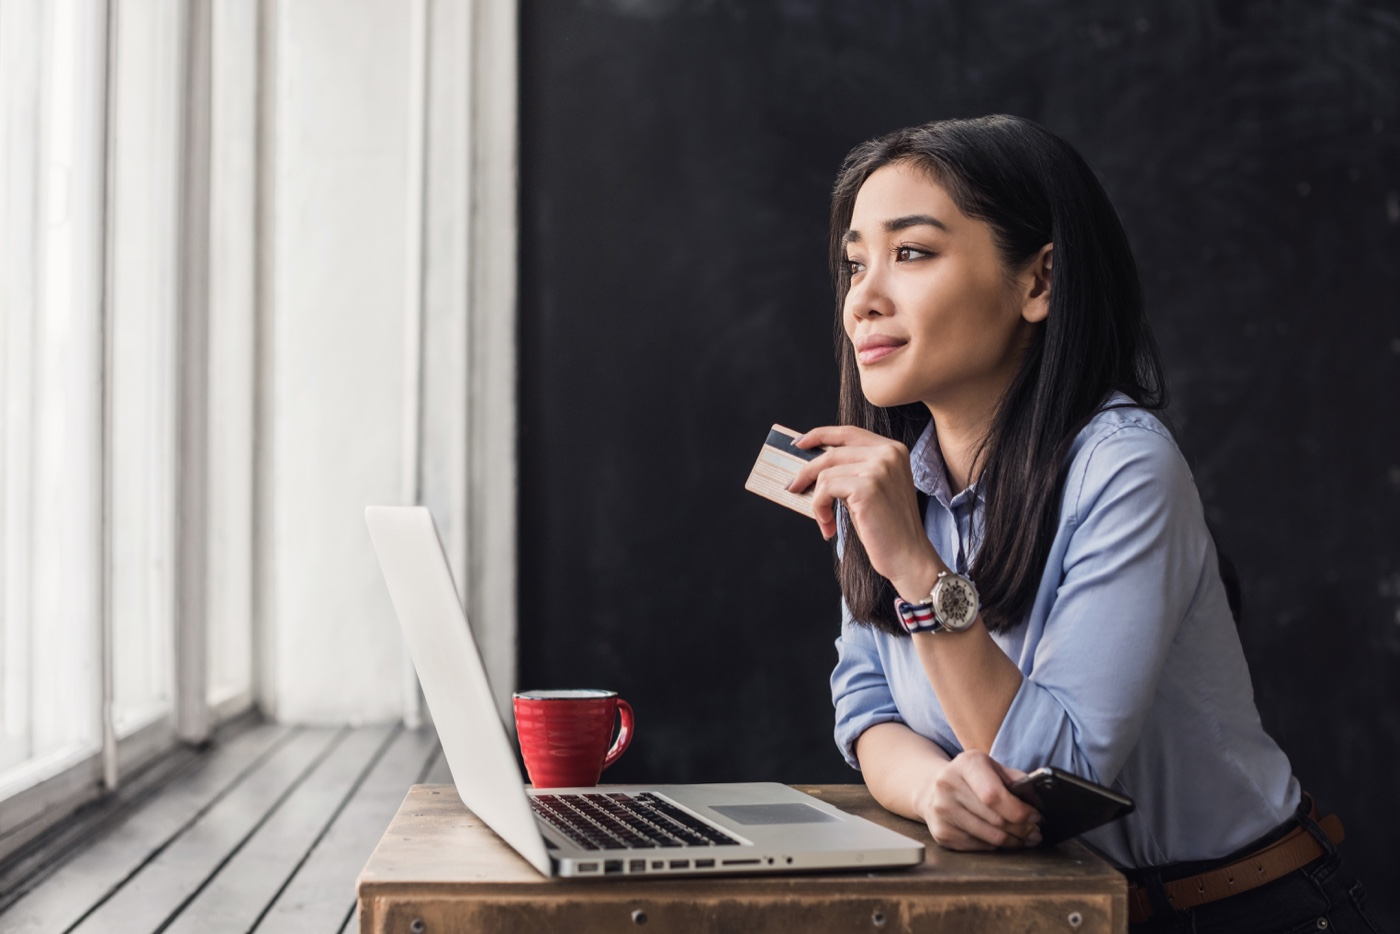 Woman at laptop with flex spending card in hand